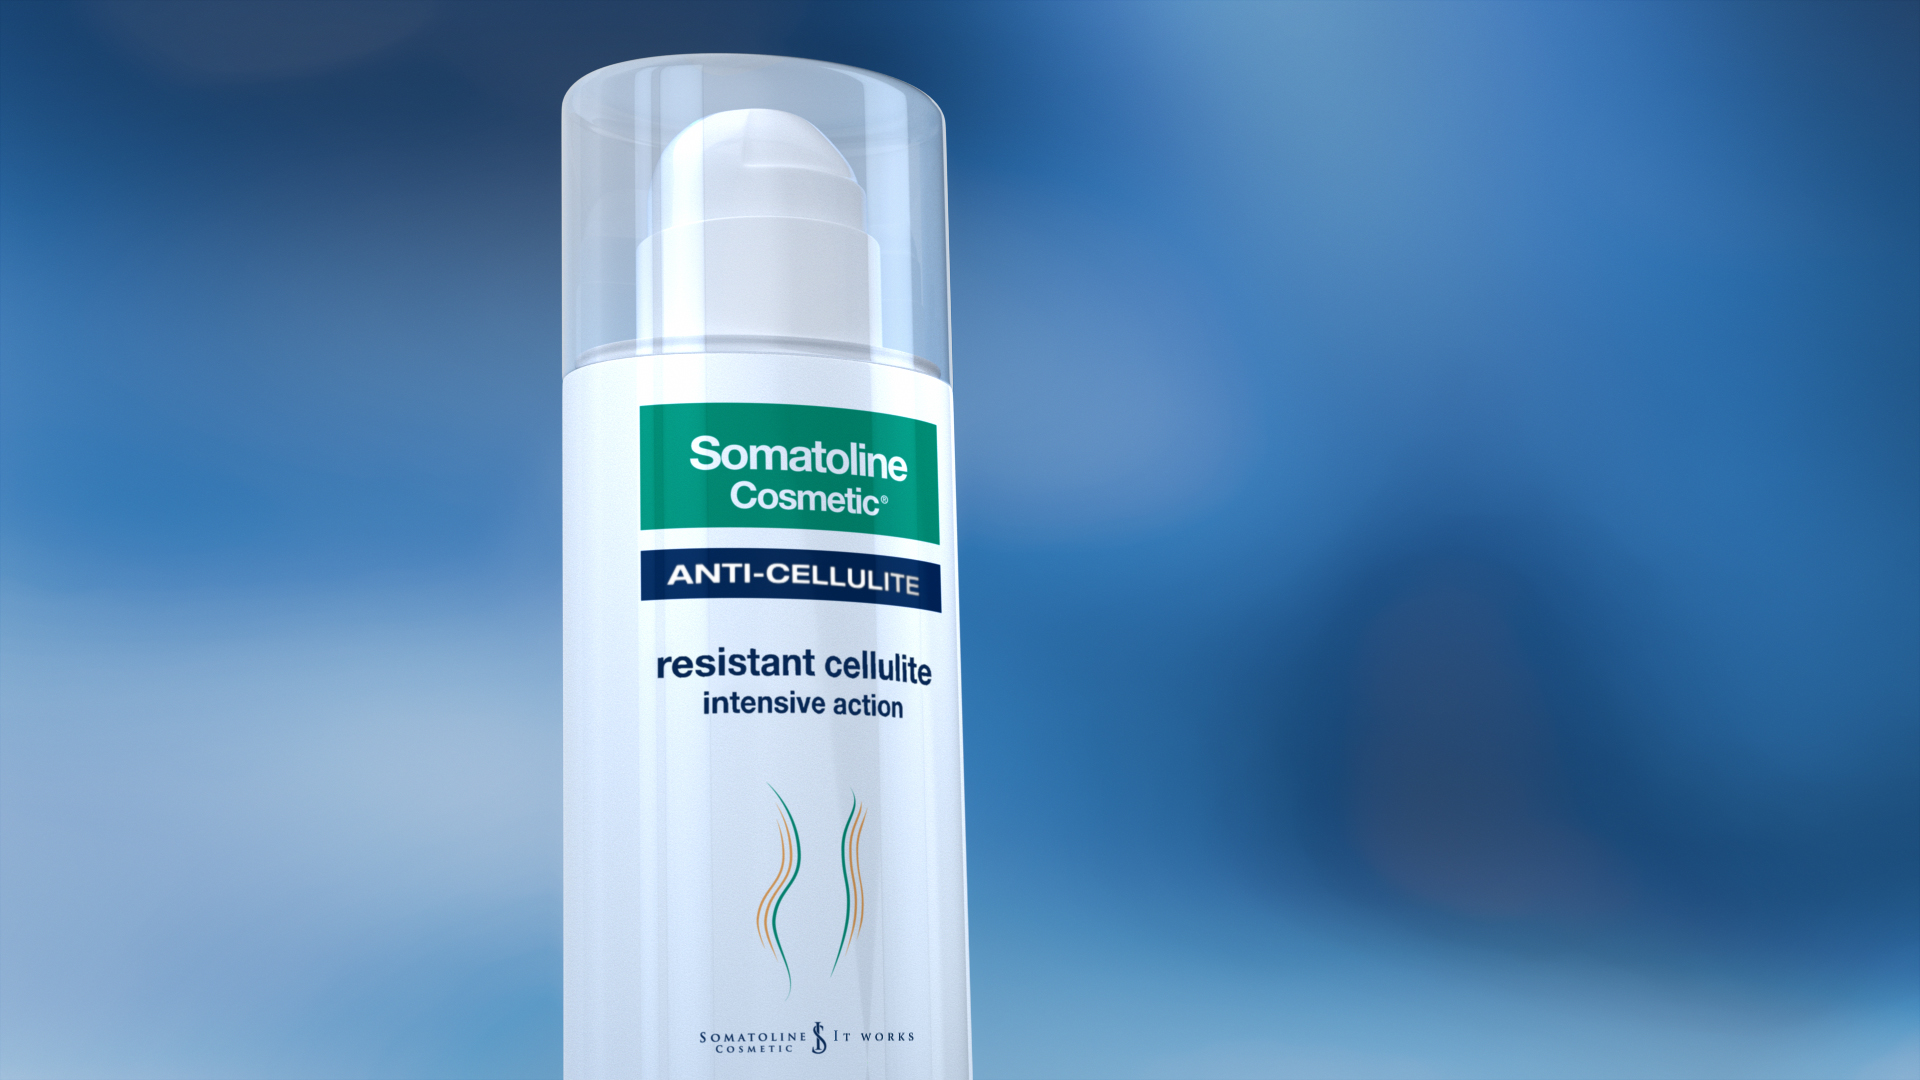 Somatoline Comsetic Anti-Cellulite